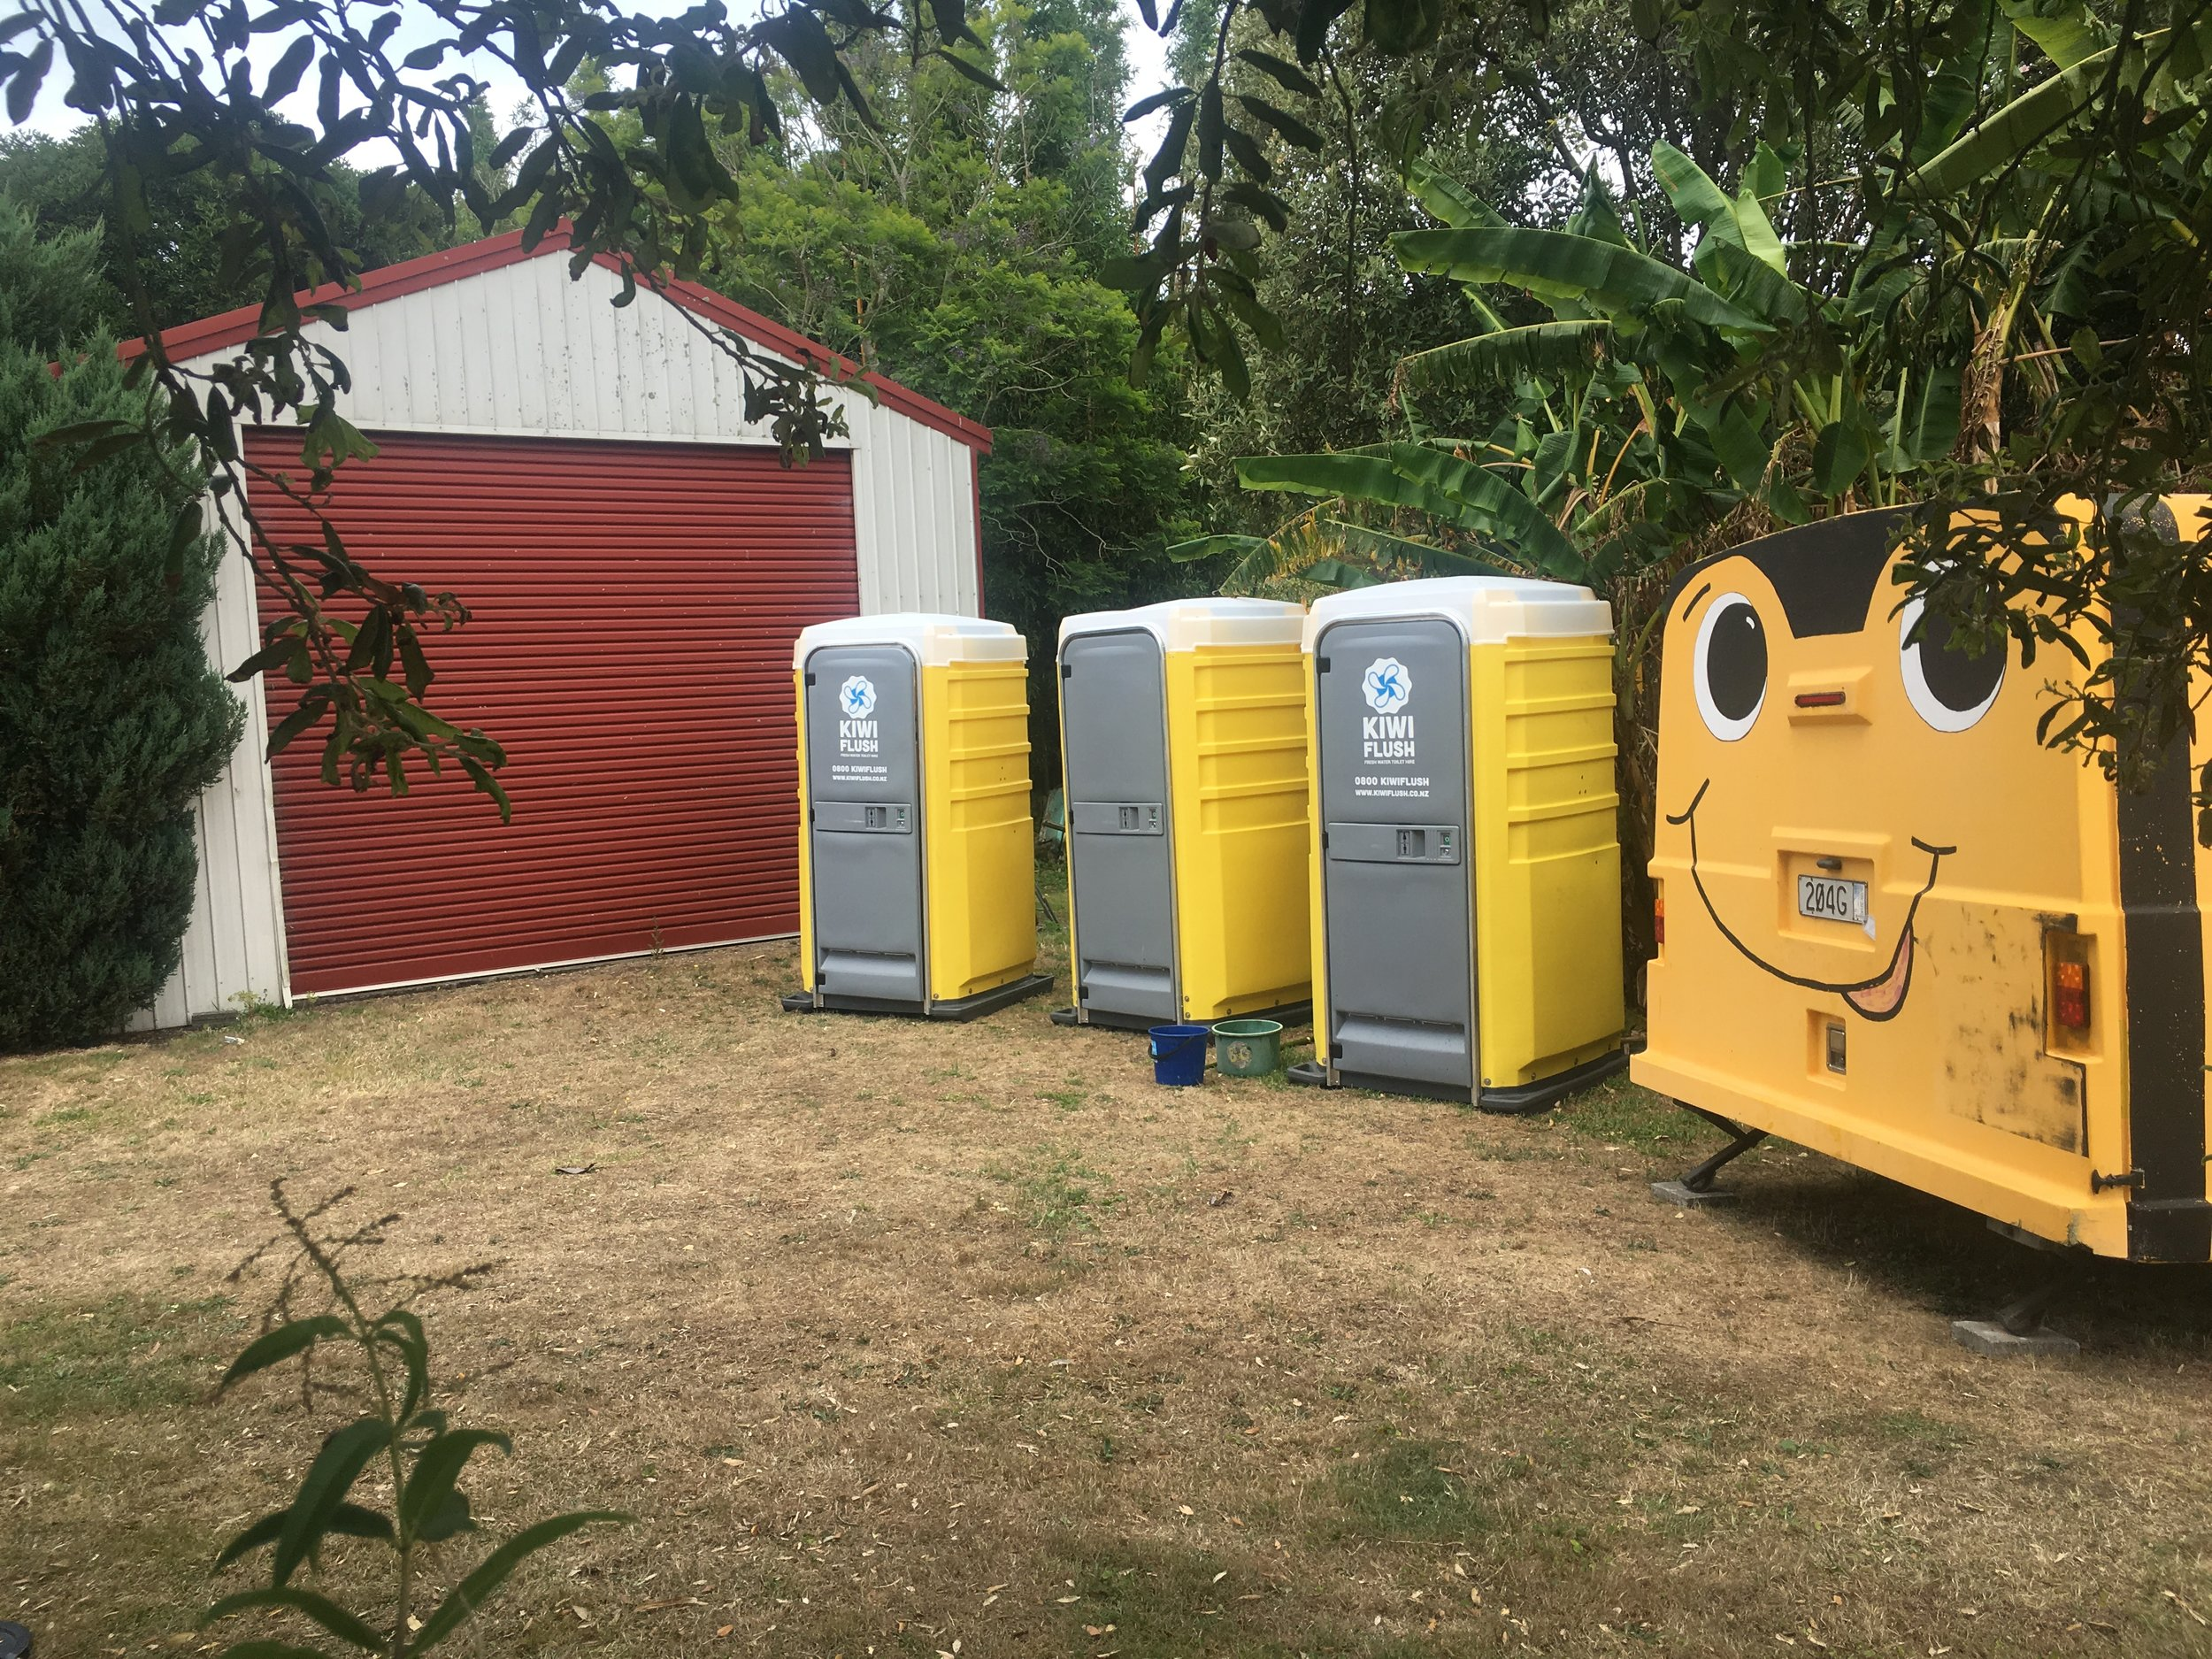 Happy 'Glampers' with Kiwi Flush loos and shower onsite!